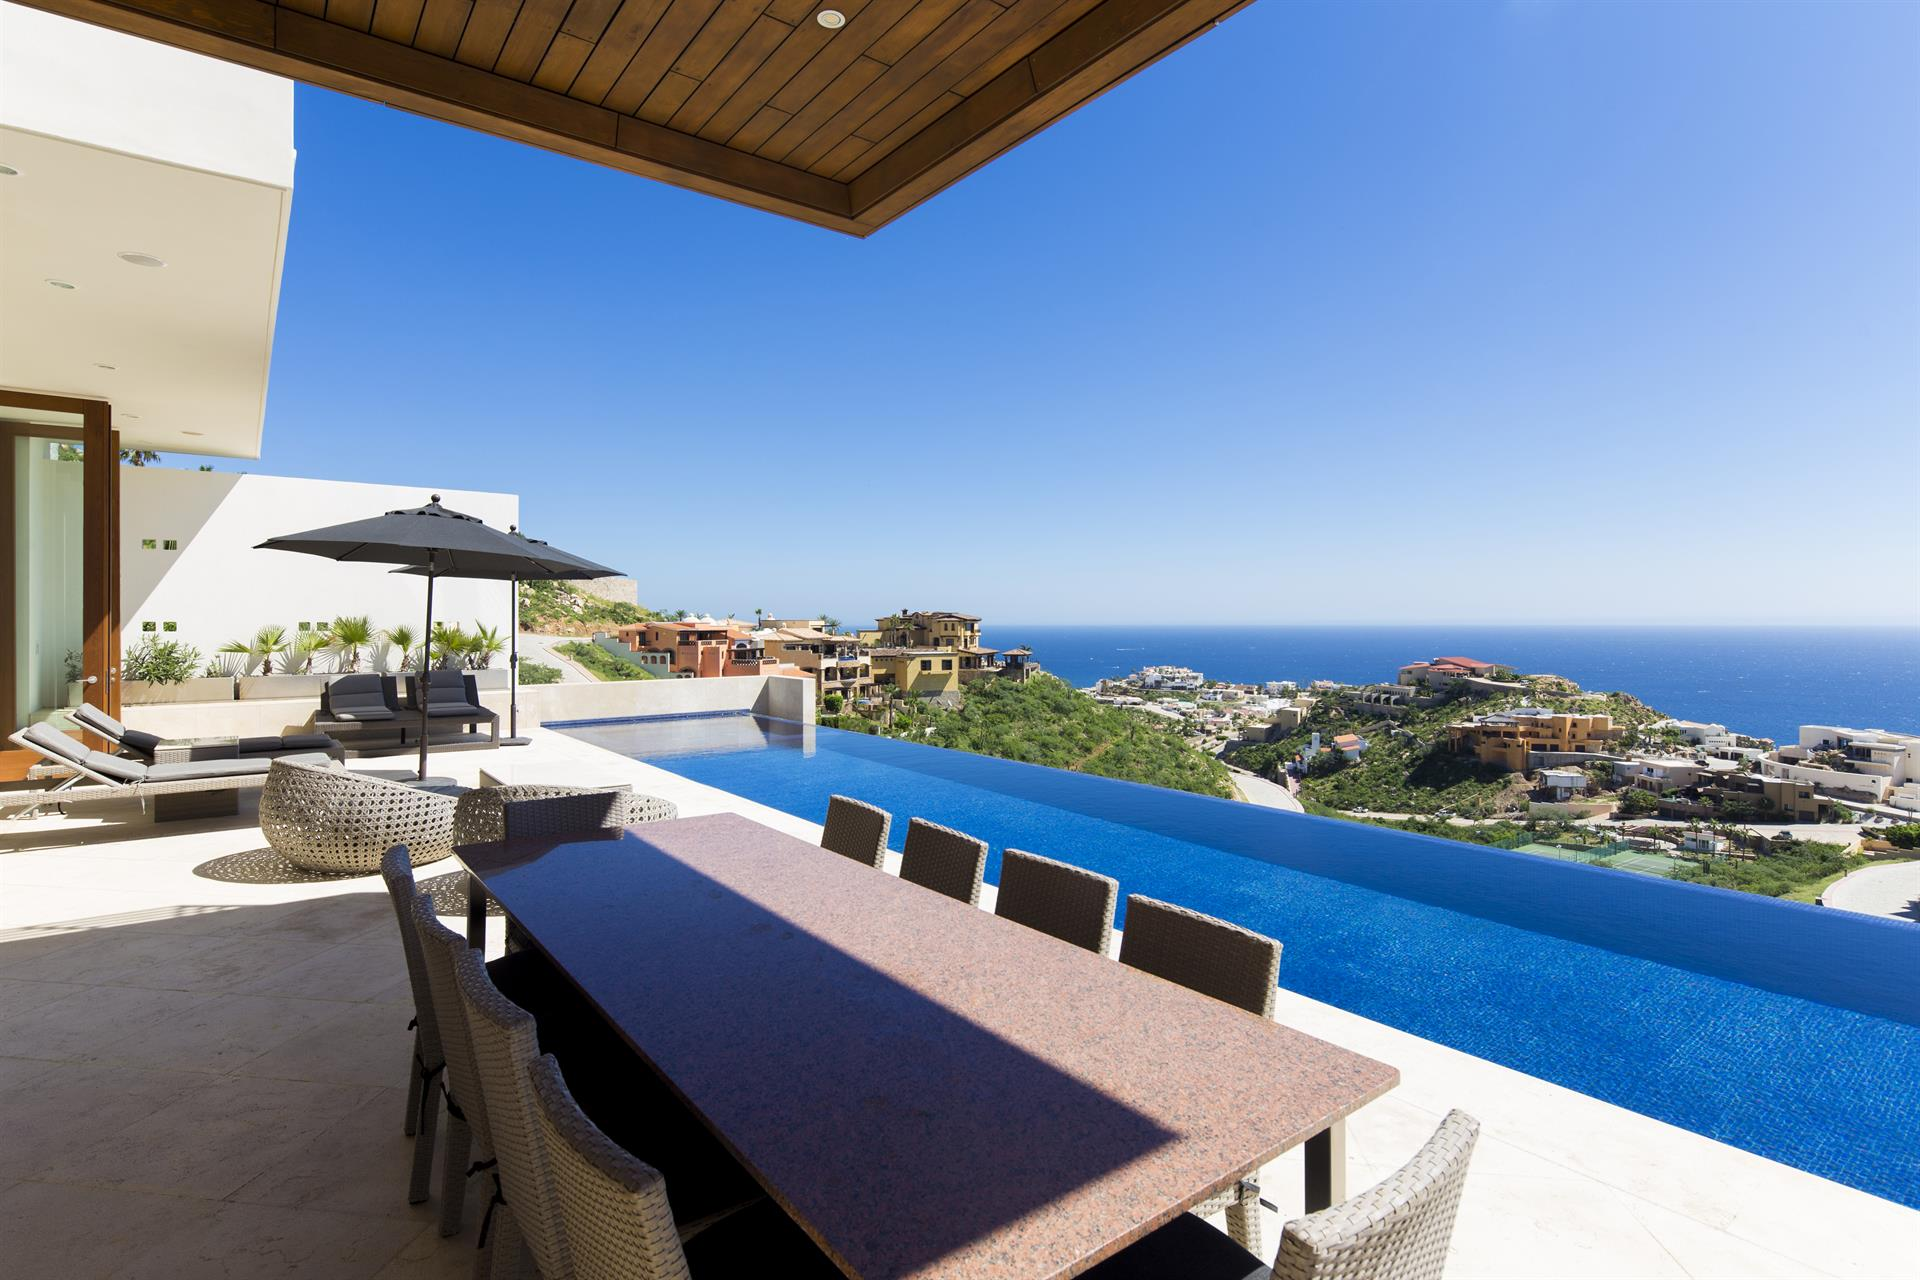 Additional photo for property listing at Ventana al Cielo  Cabo San Lucas, Baja California Sur,23453 Mexico